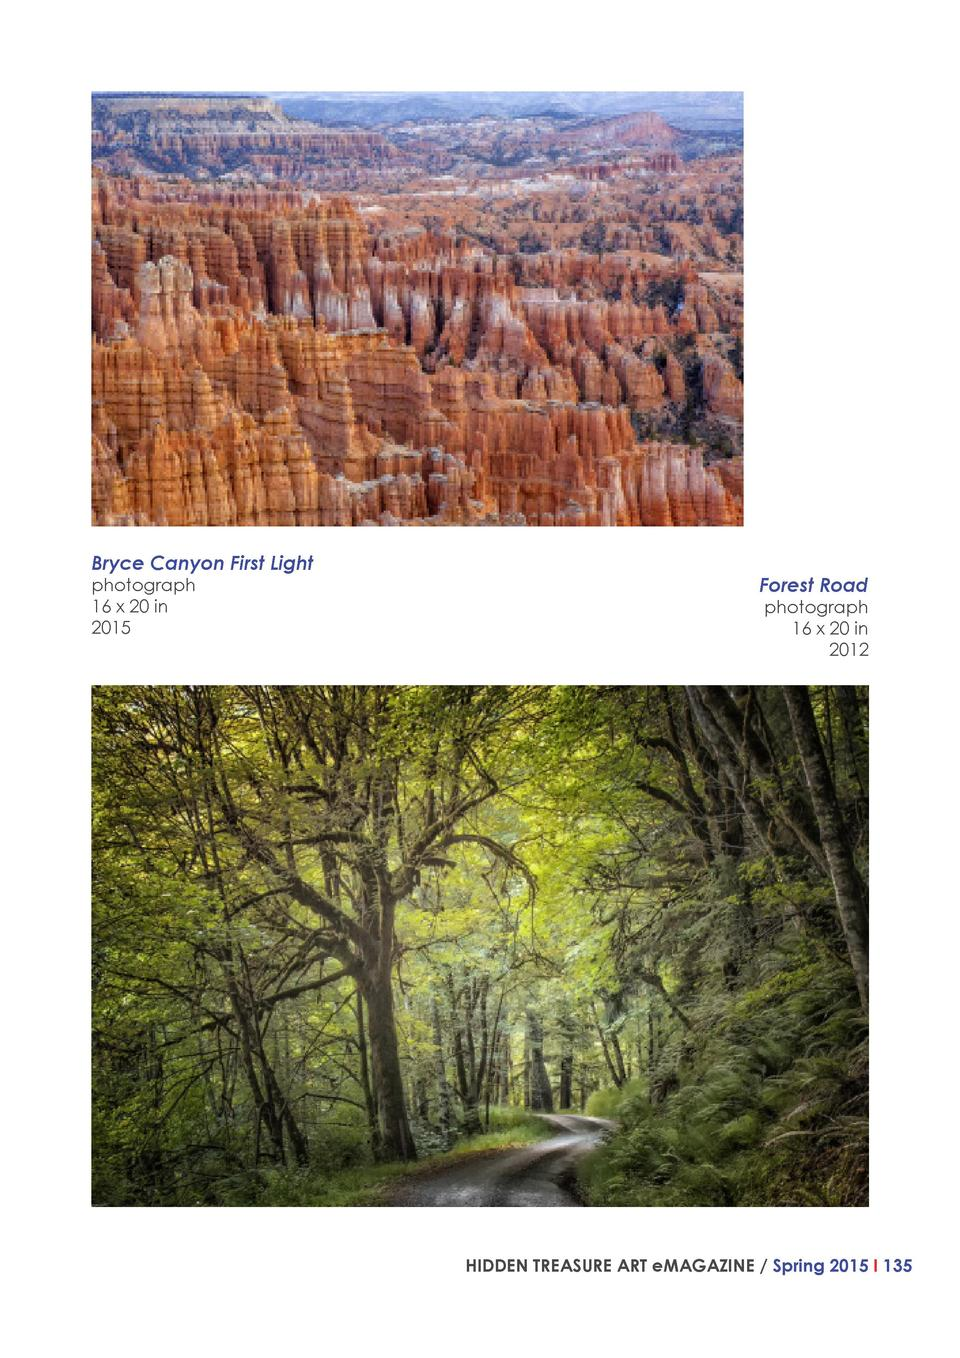 Bryce Canyon First Light photograph 16 x 20 in 2015  Forest Road  photograph 16 x 20 in 2012  HIDDEN TREASURE ART eMAGAZIN...